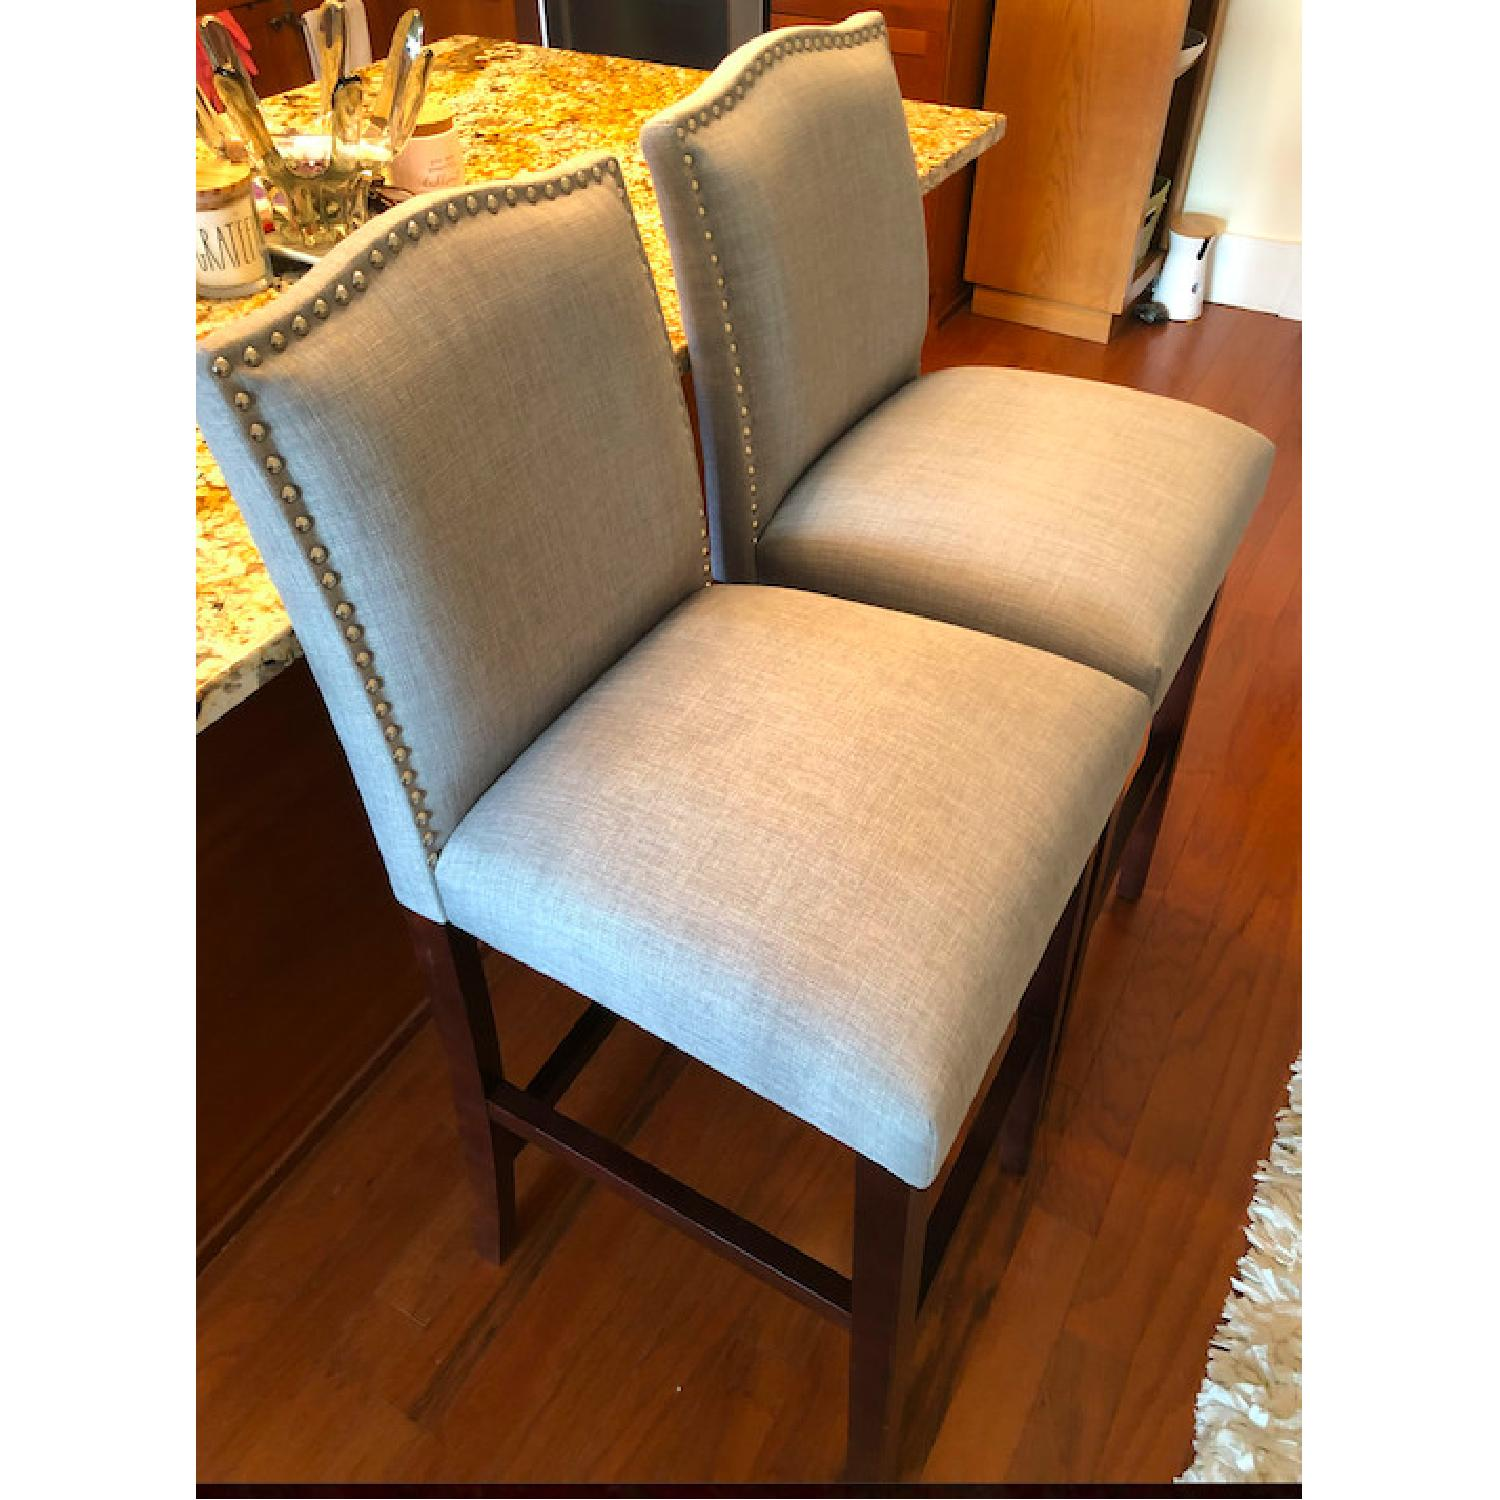 Skyline Furniture Gray Linen Upholstered Nail Button Stools - image-6